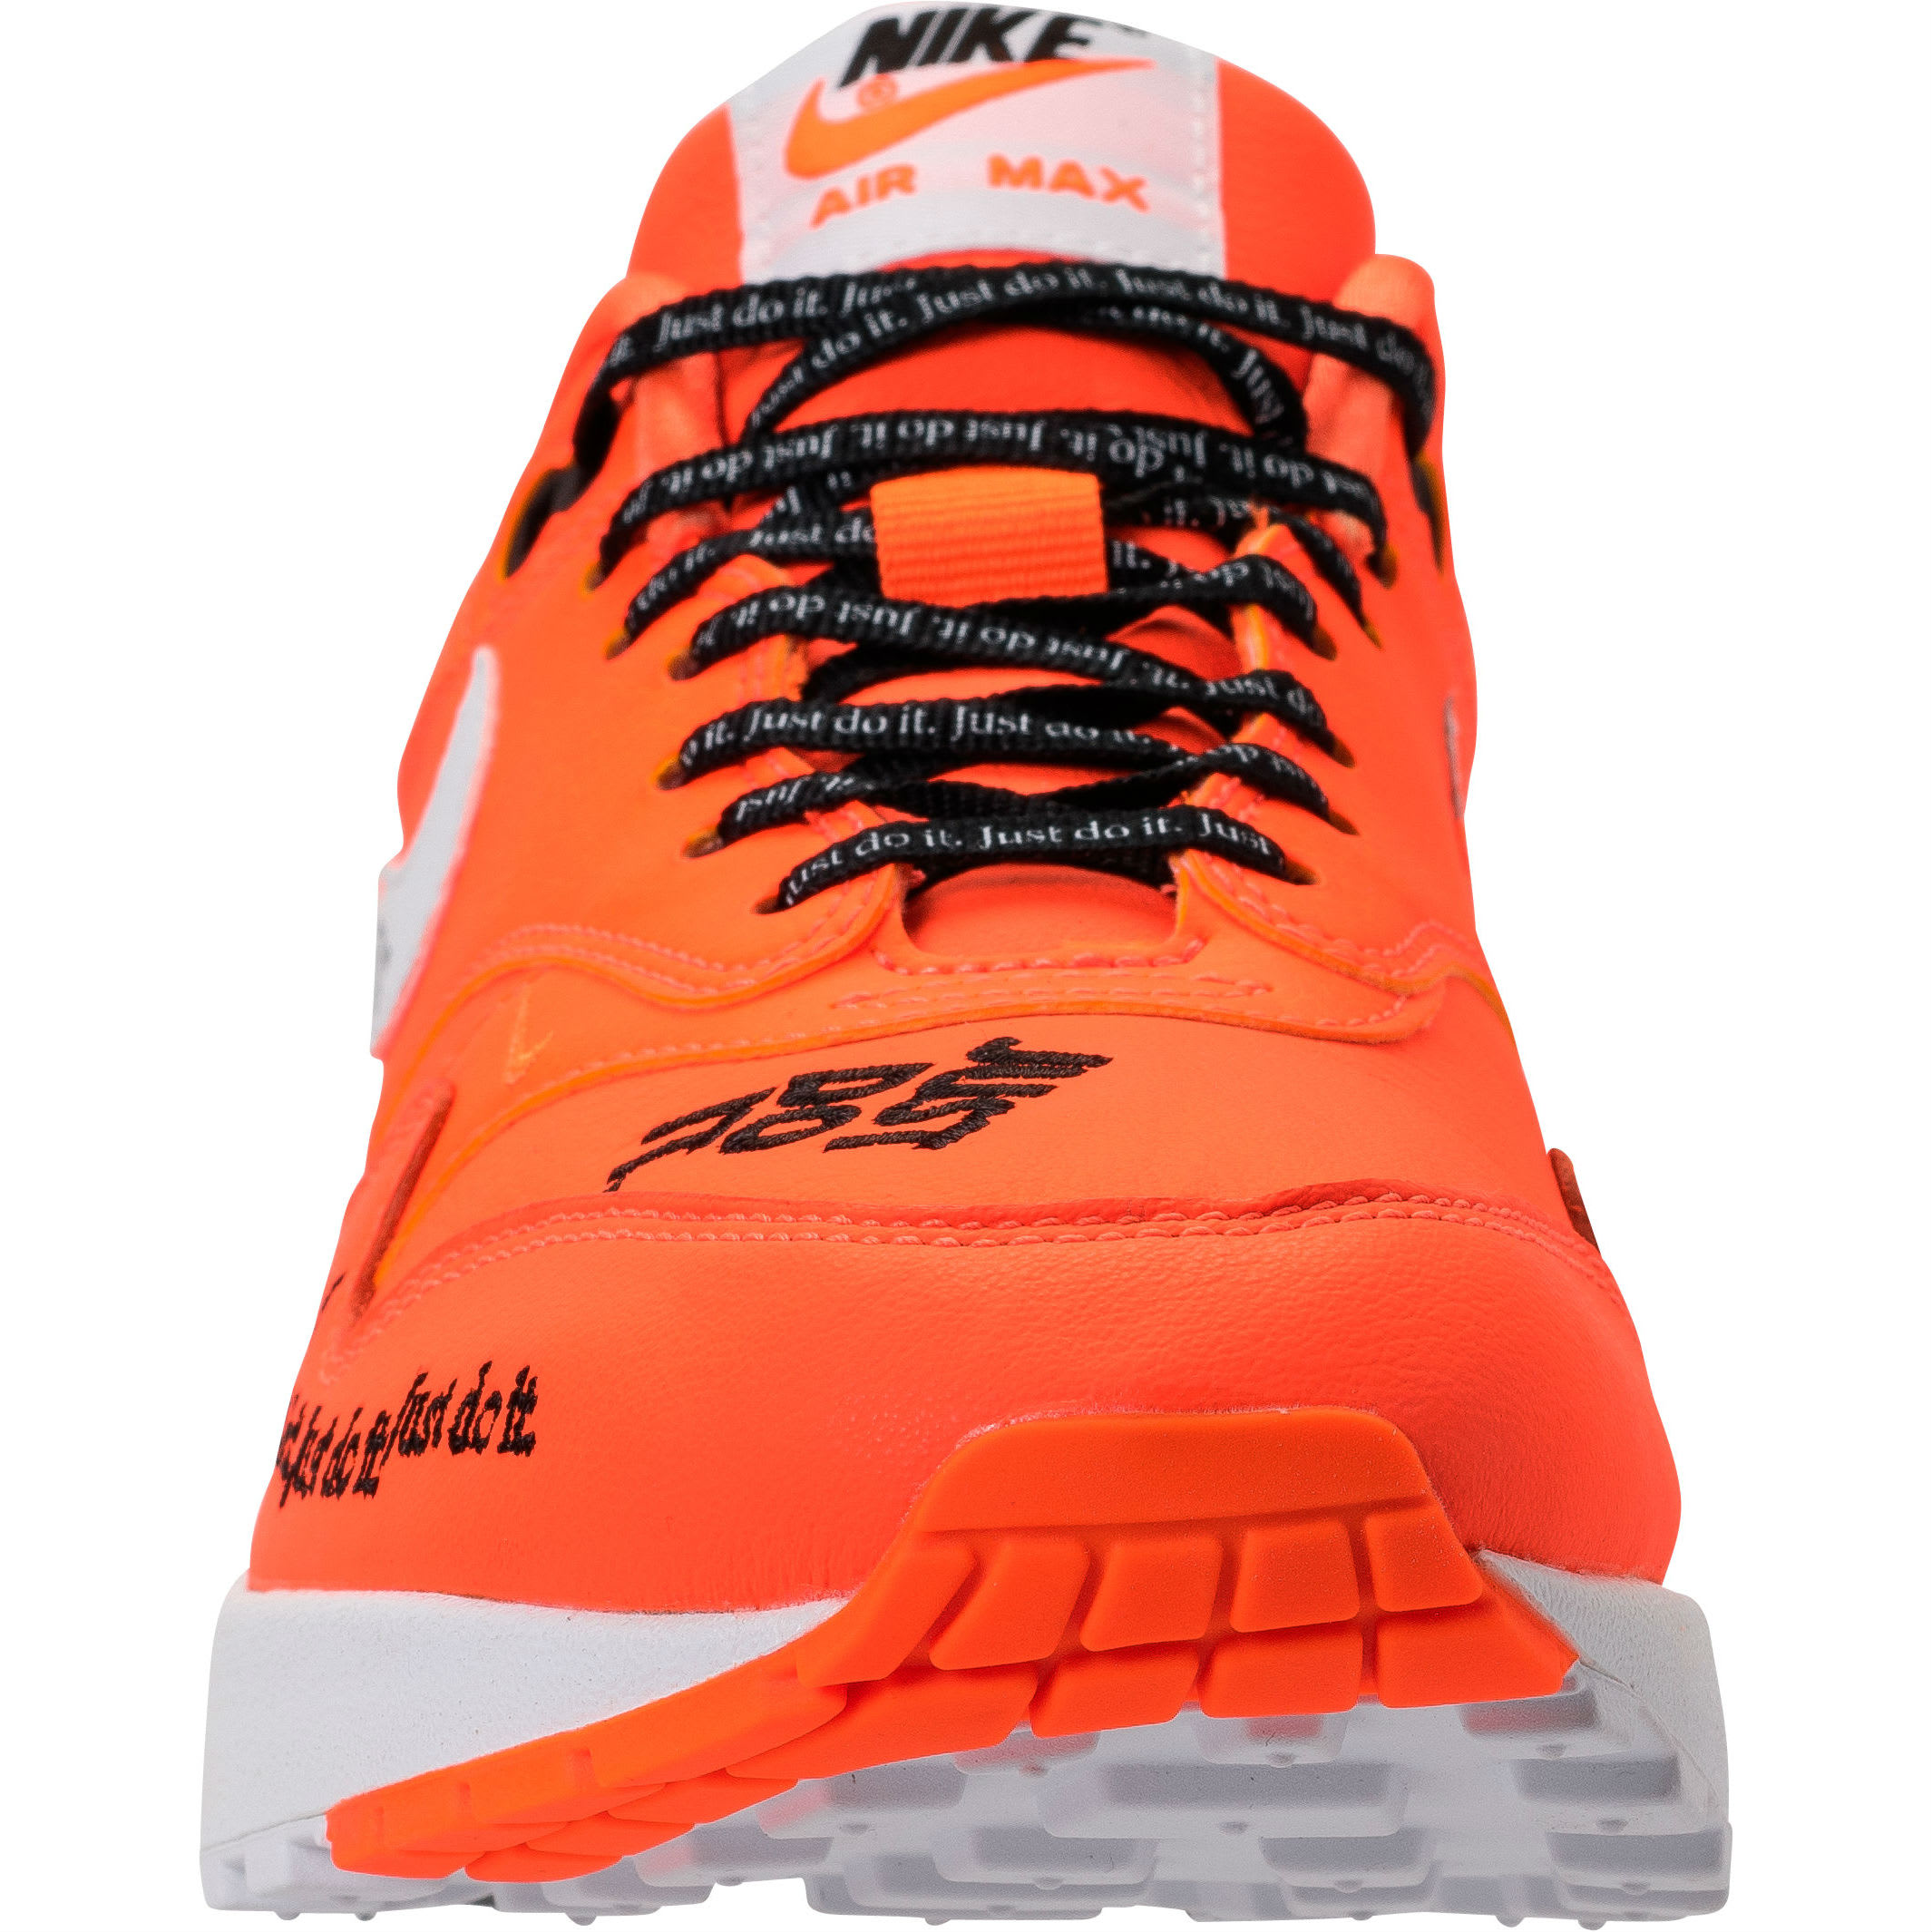 Nike Air Max 1 Just Do It Orange Release Date 917691-800 Front